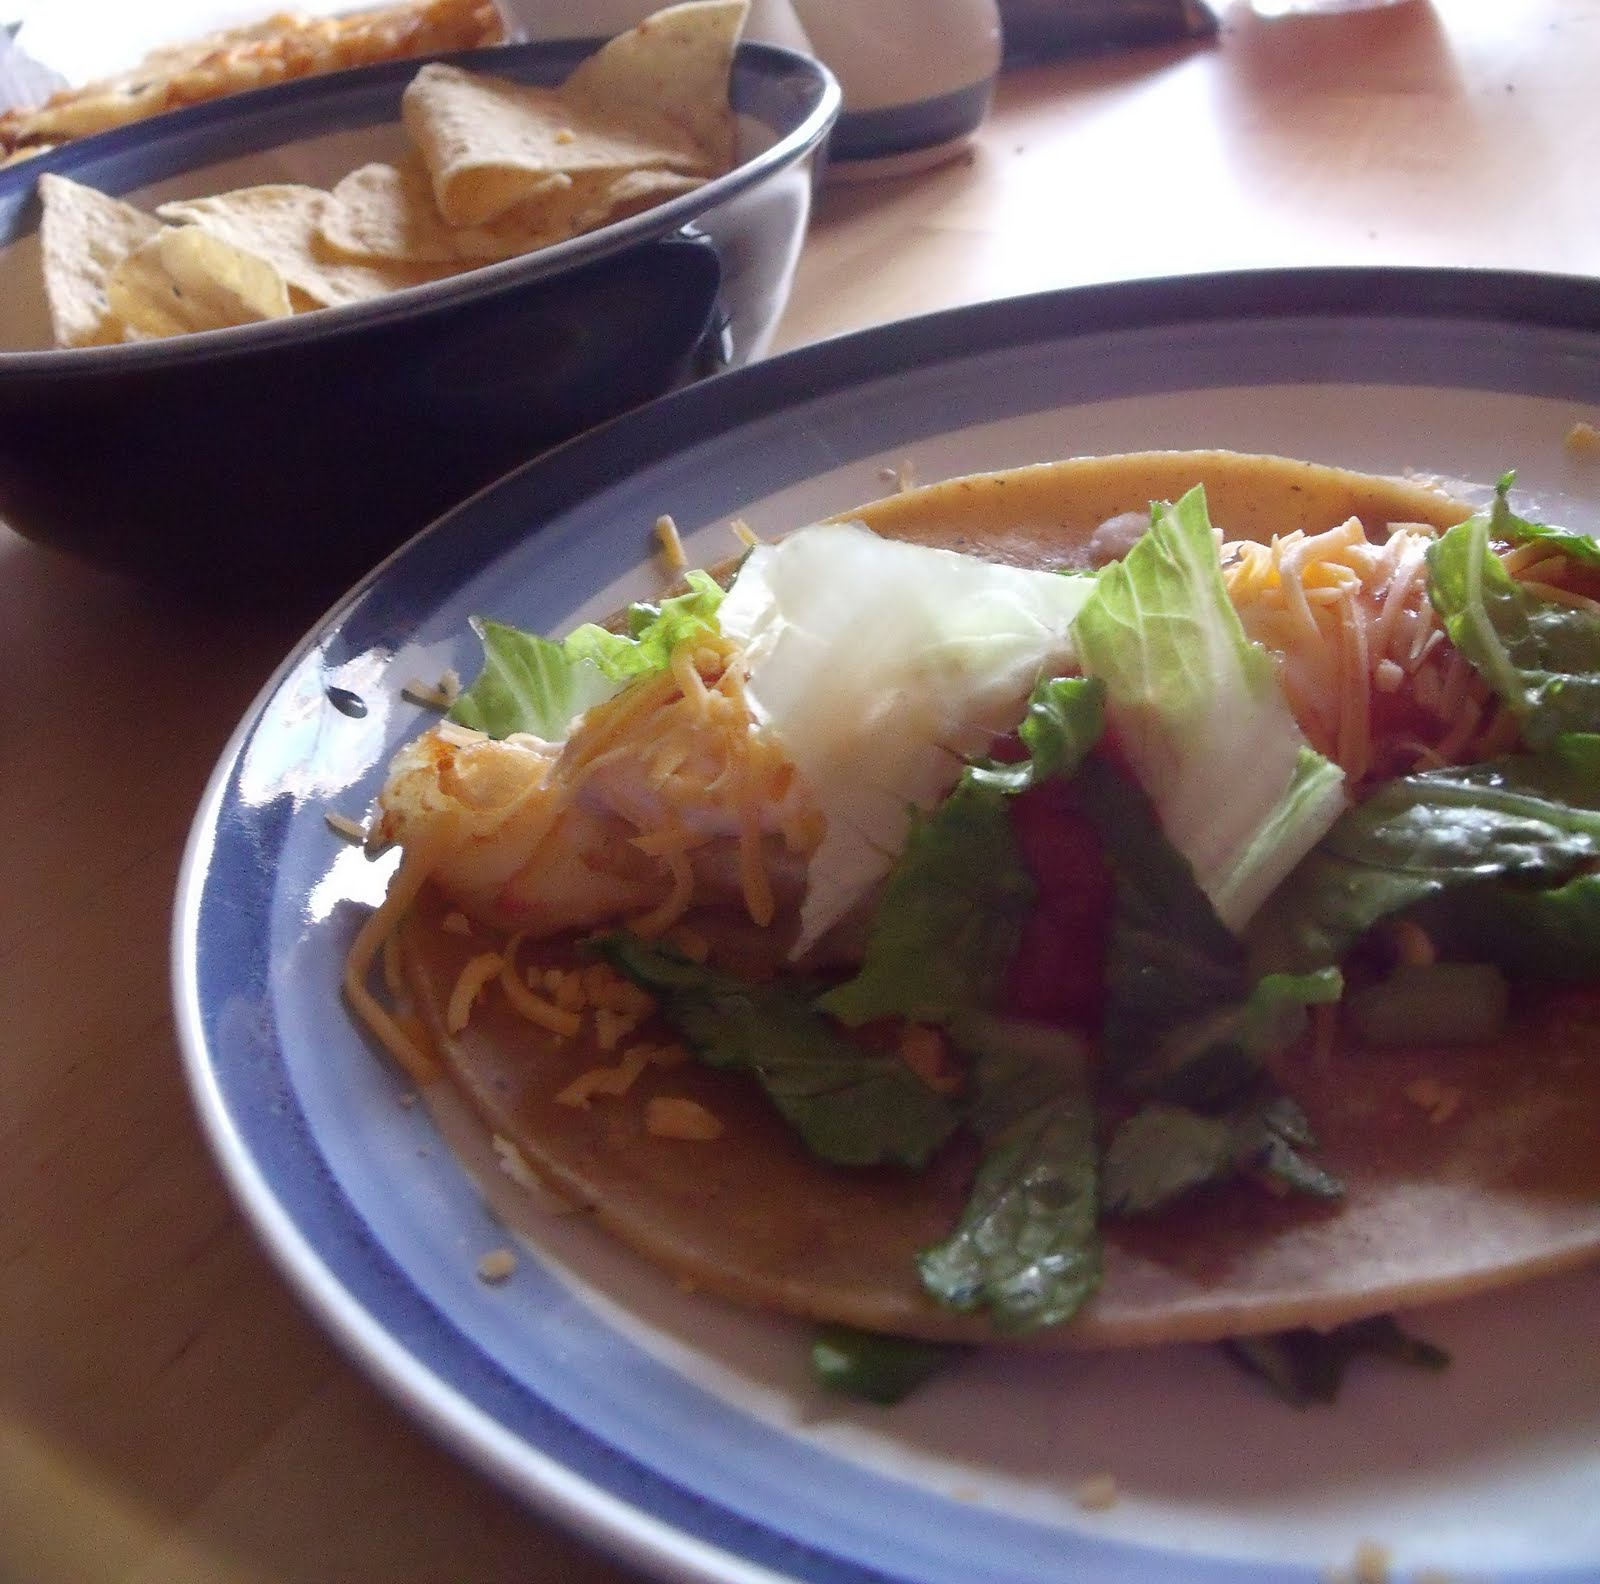 Gluten free in wichita rubio 39 s fish taco 39 s made from home for Make fish tacos